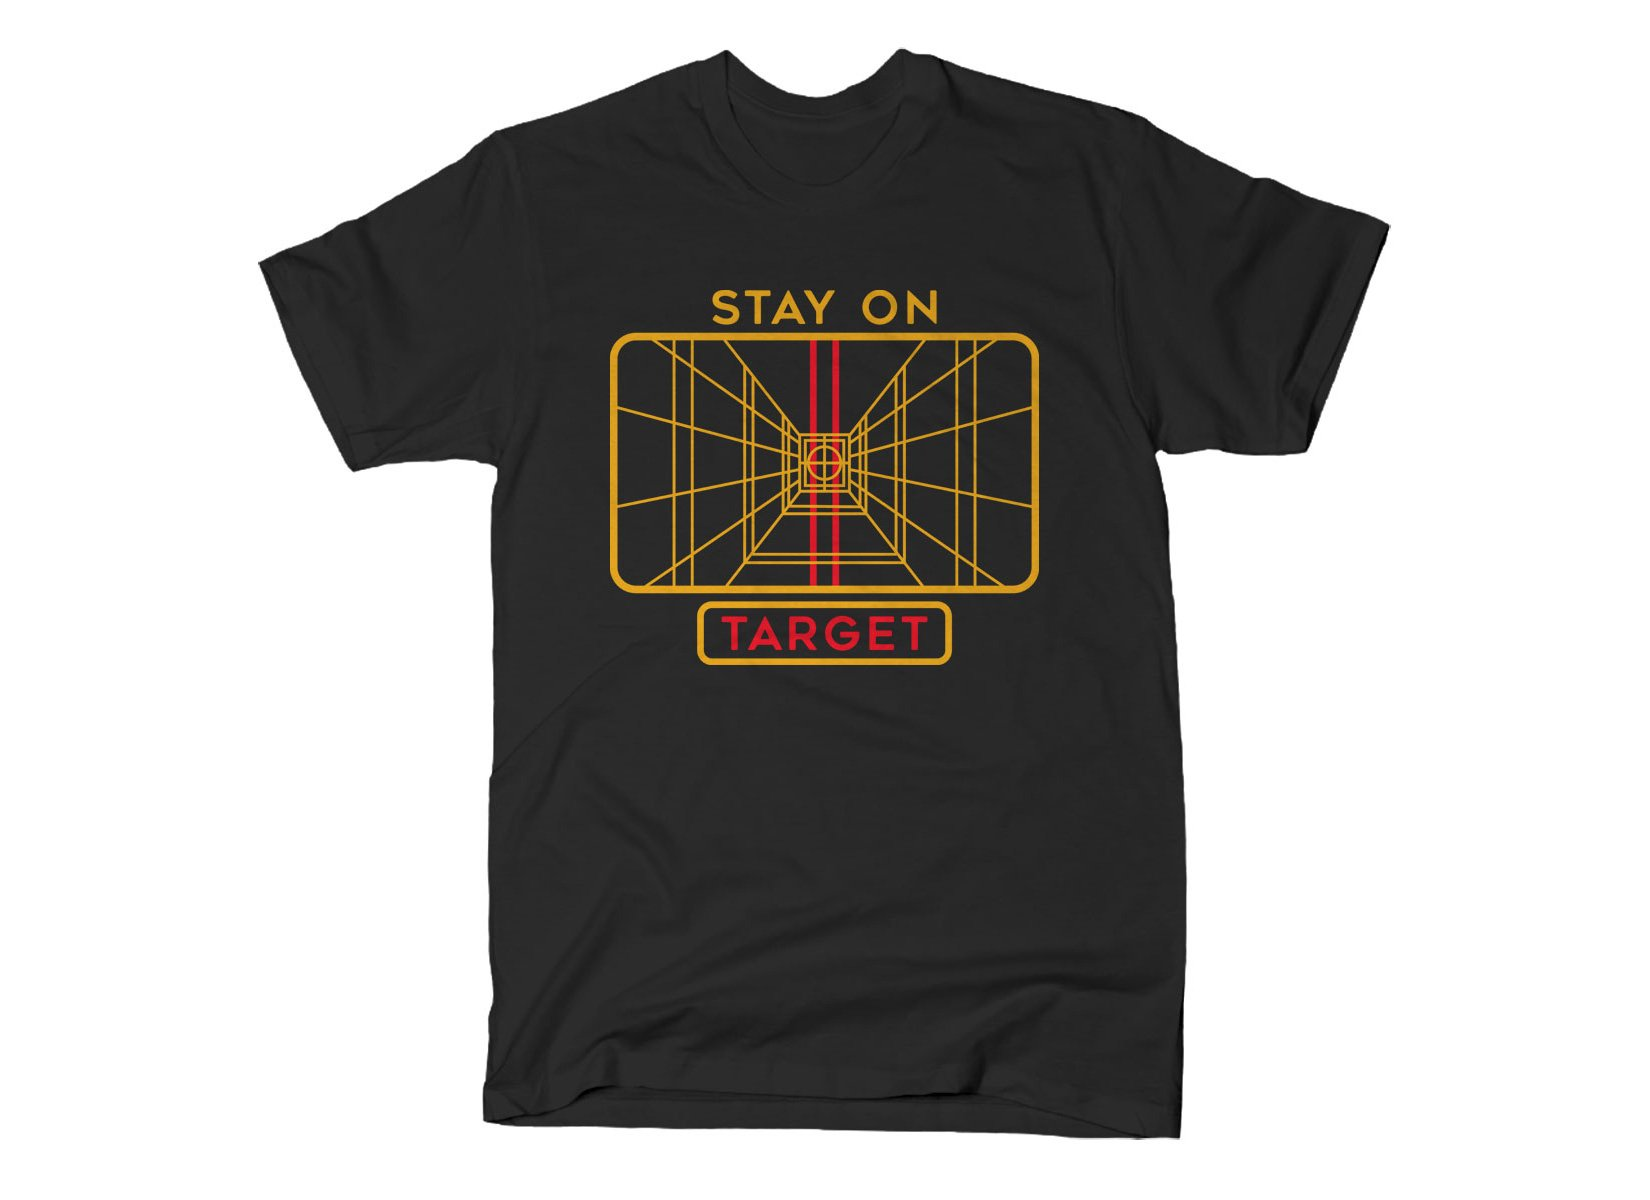 Stay On Target on Mens T-Shirt